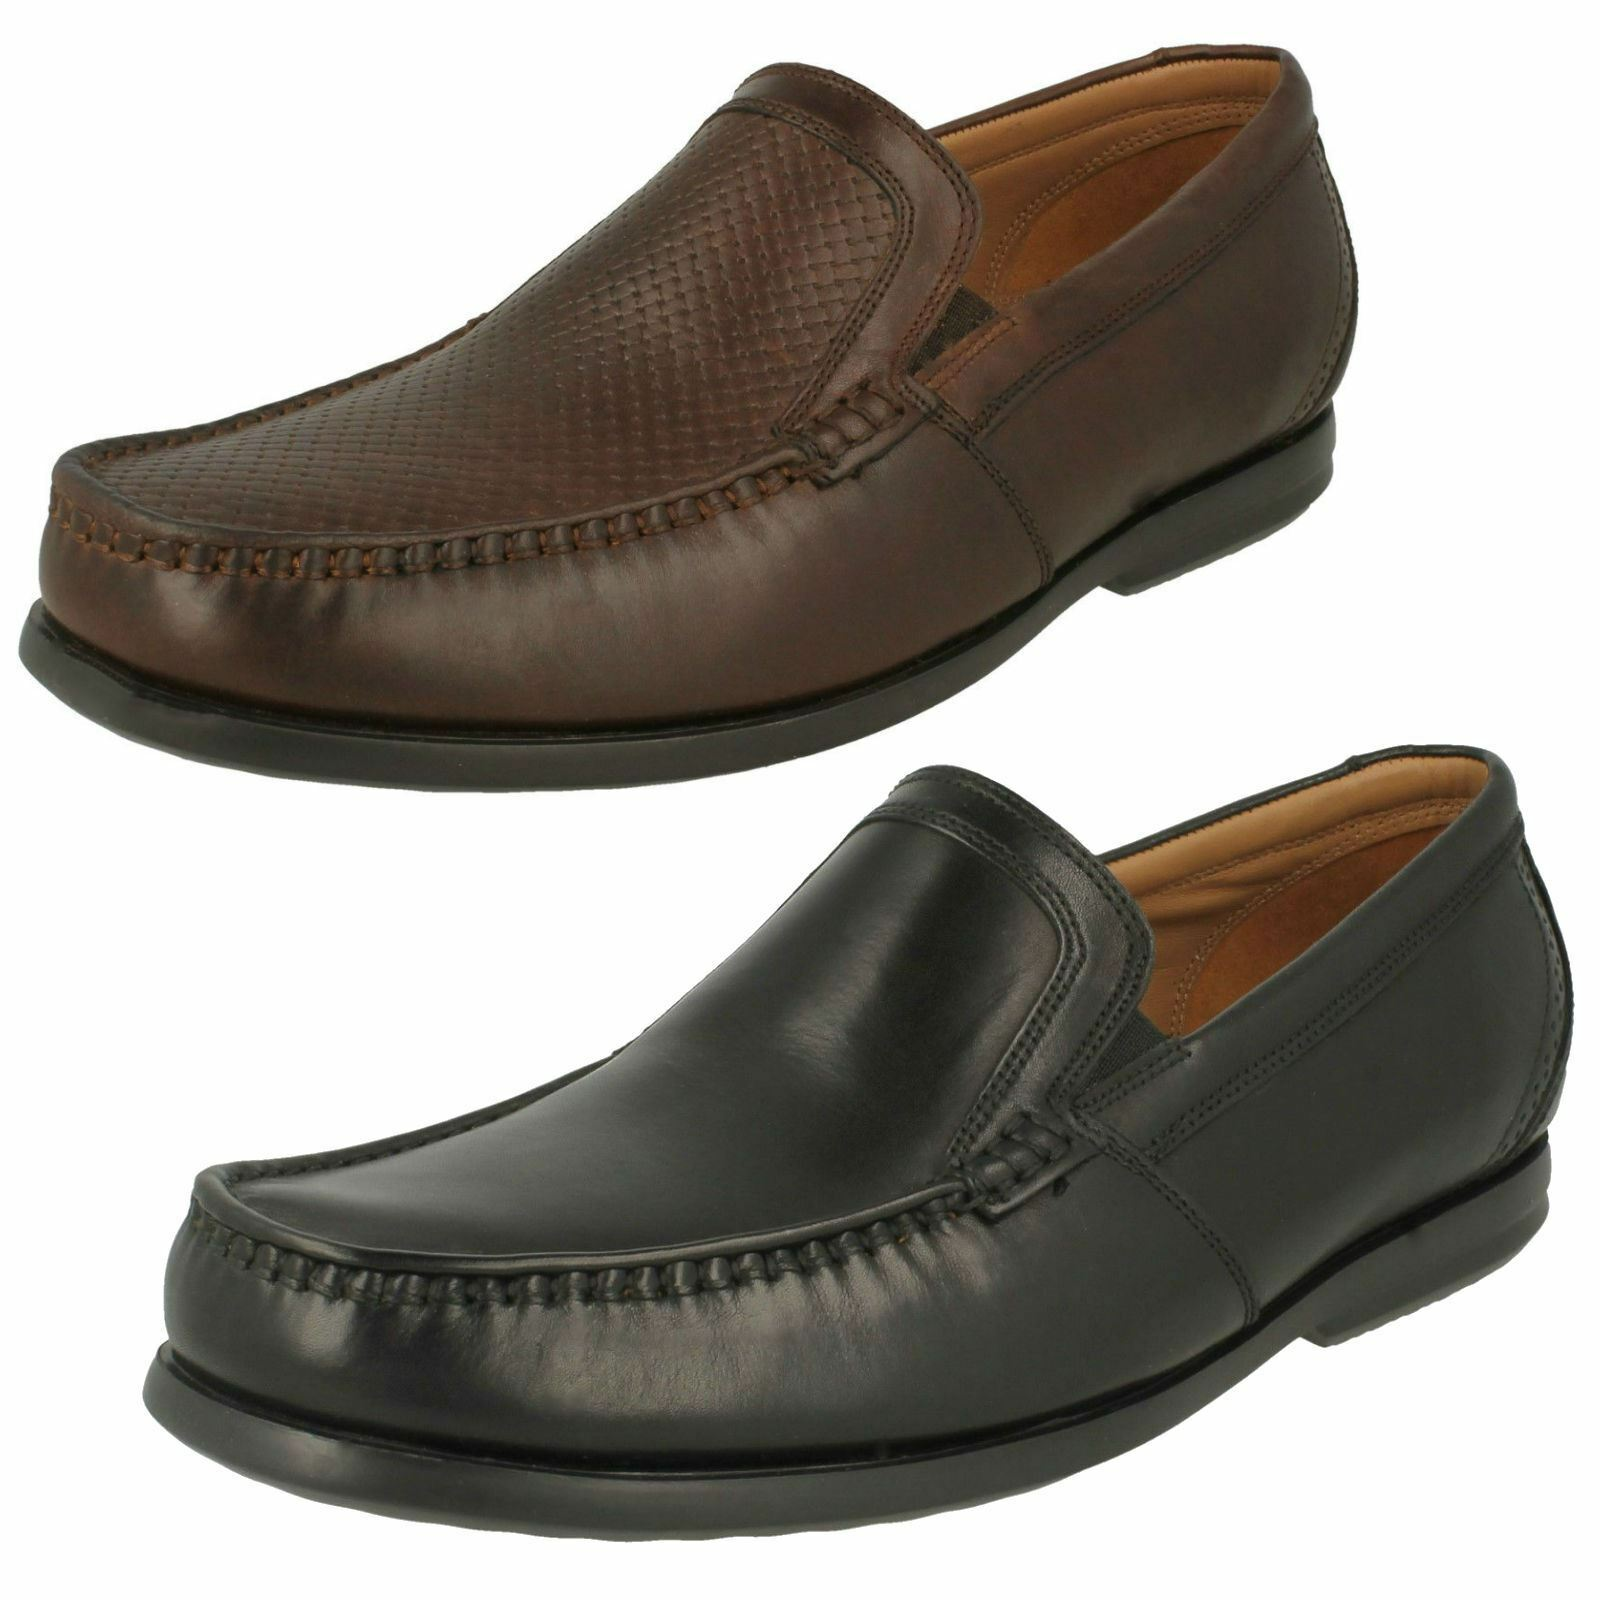 Mens Clarks Slip On Fastening Formal Leather Loafers Un Gala Free